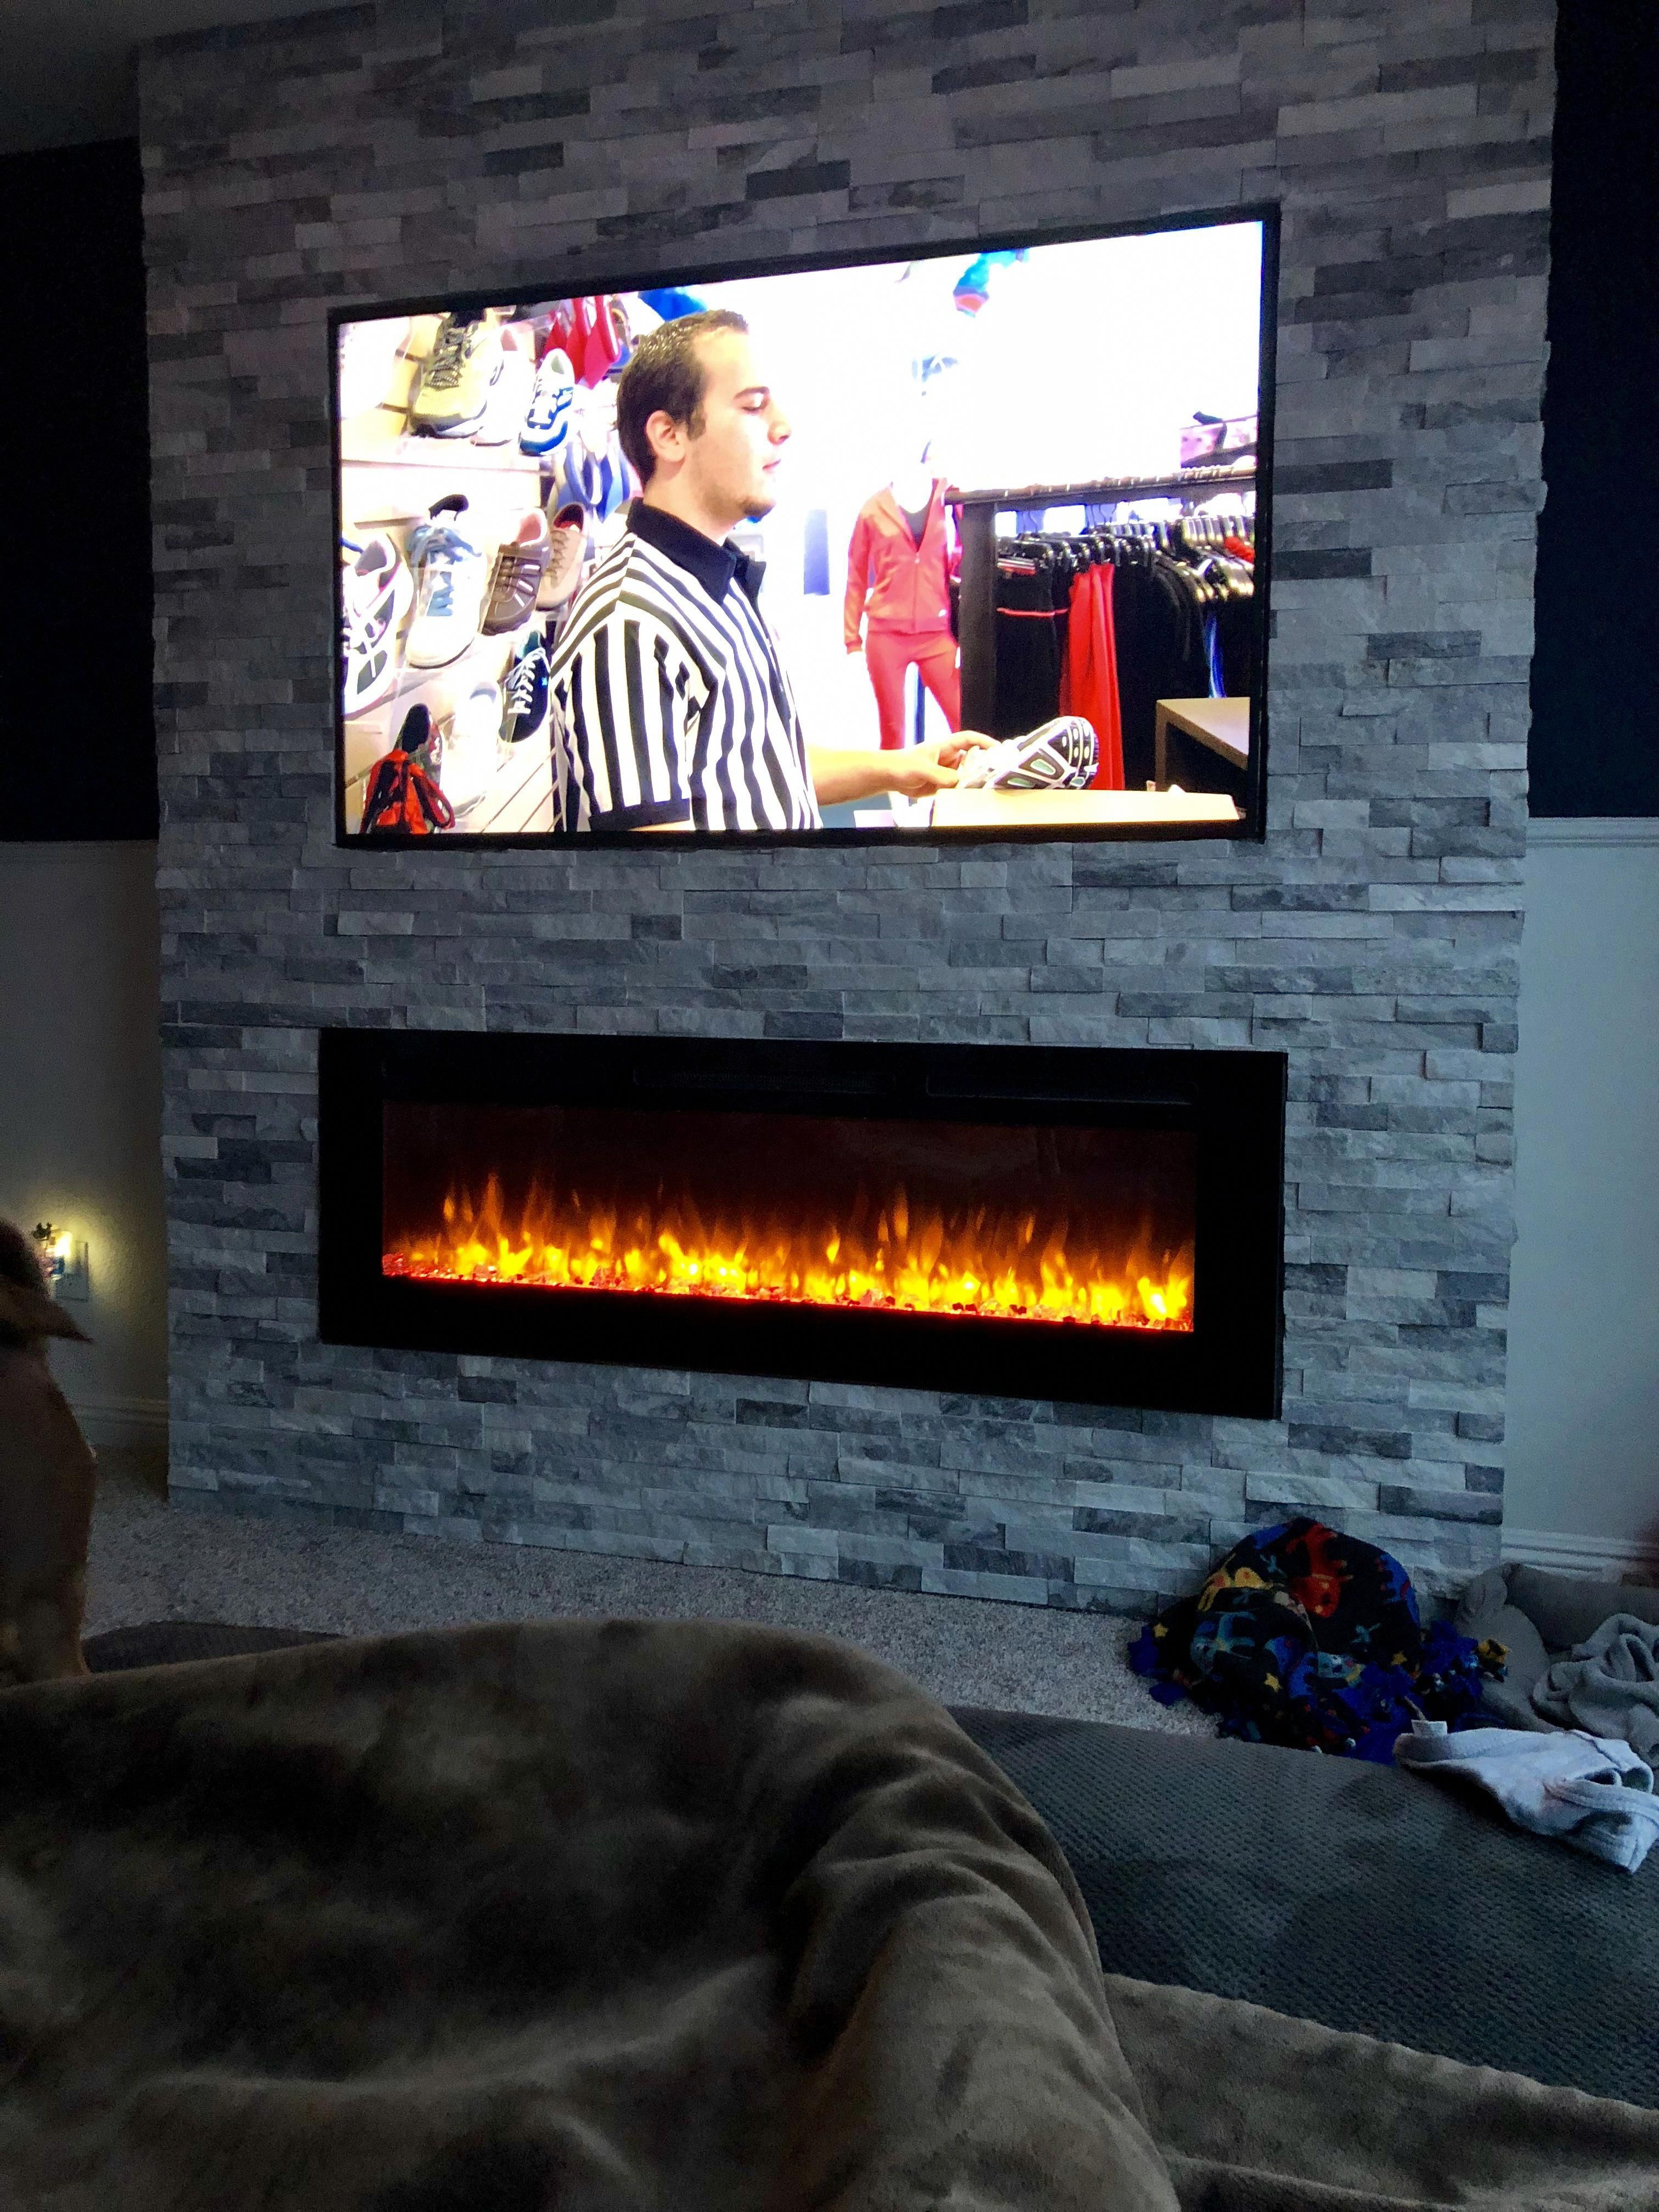 Electric Fireplace And Tv Built In Stone Wall Livingroomideas